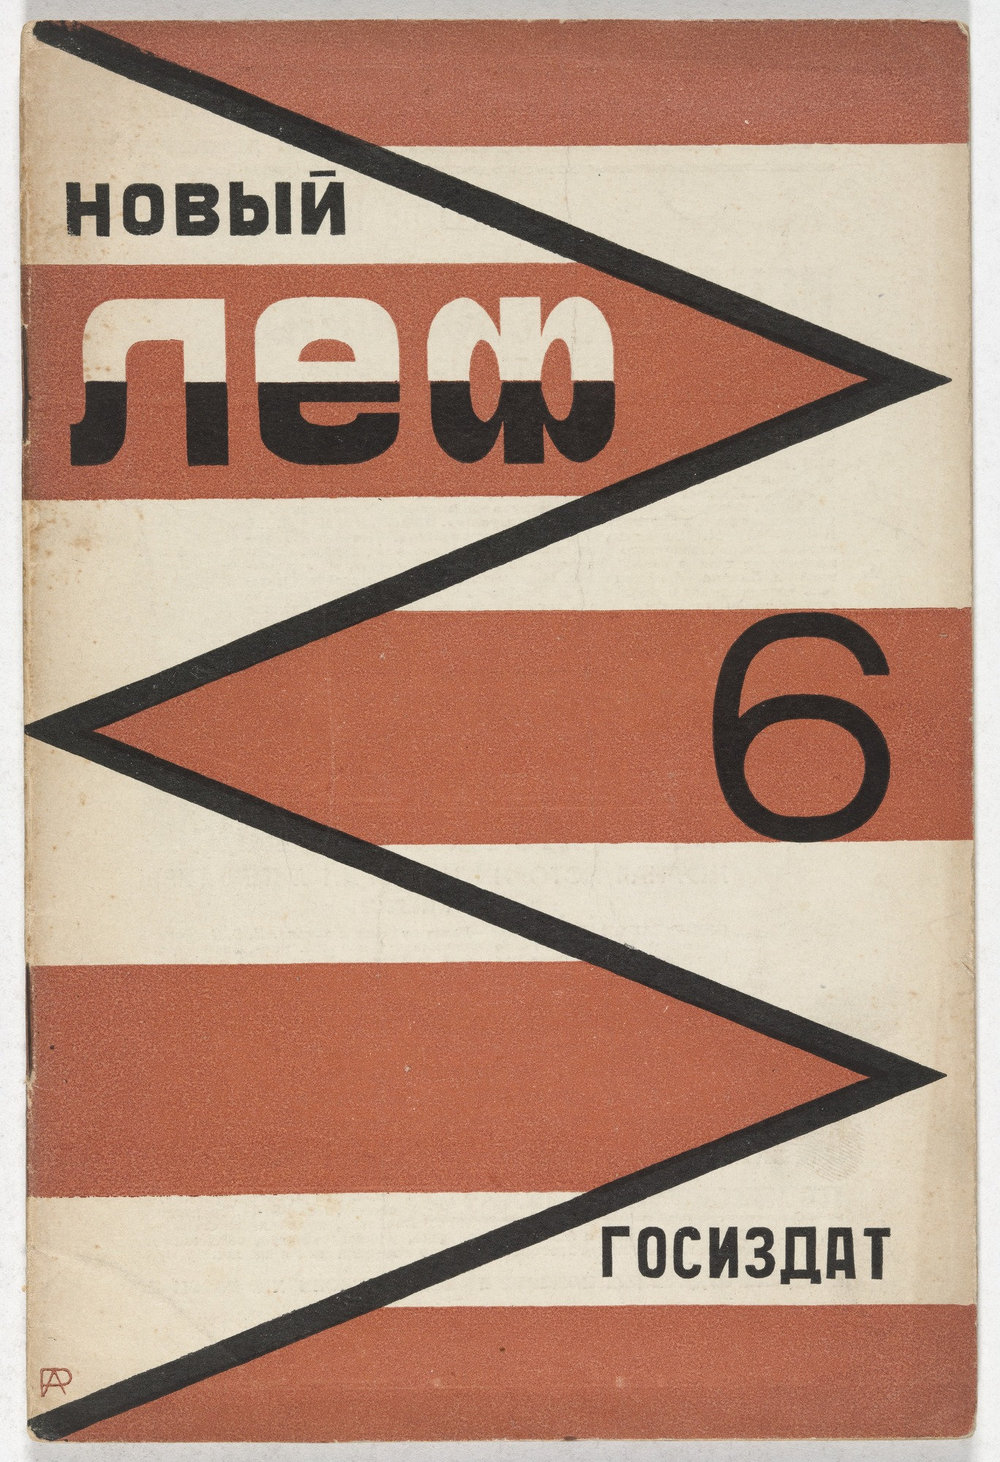 Aleksandr Rodchenko, Novyi LEF. Zhurnal levogo fronta iskusstv (New LEF: Journal of the Left Front of the Arts), no. 6, 1928